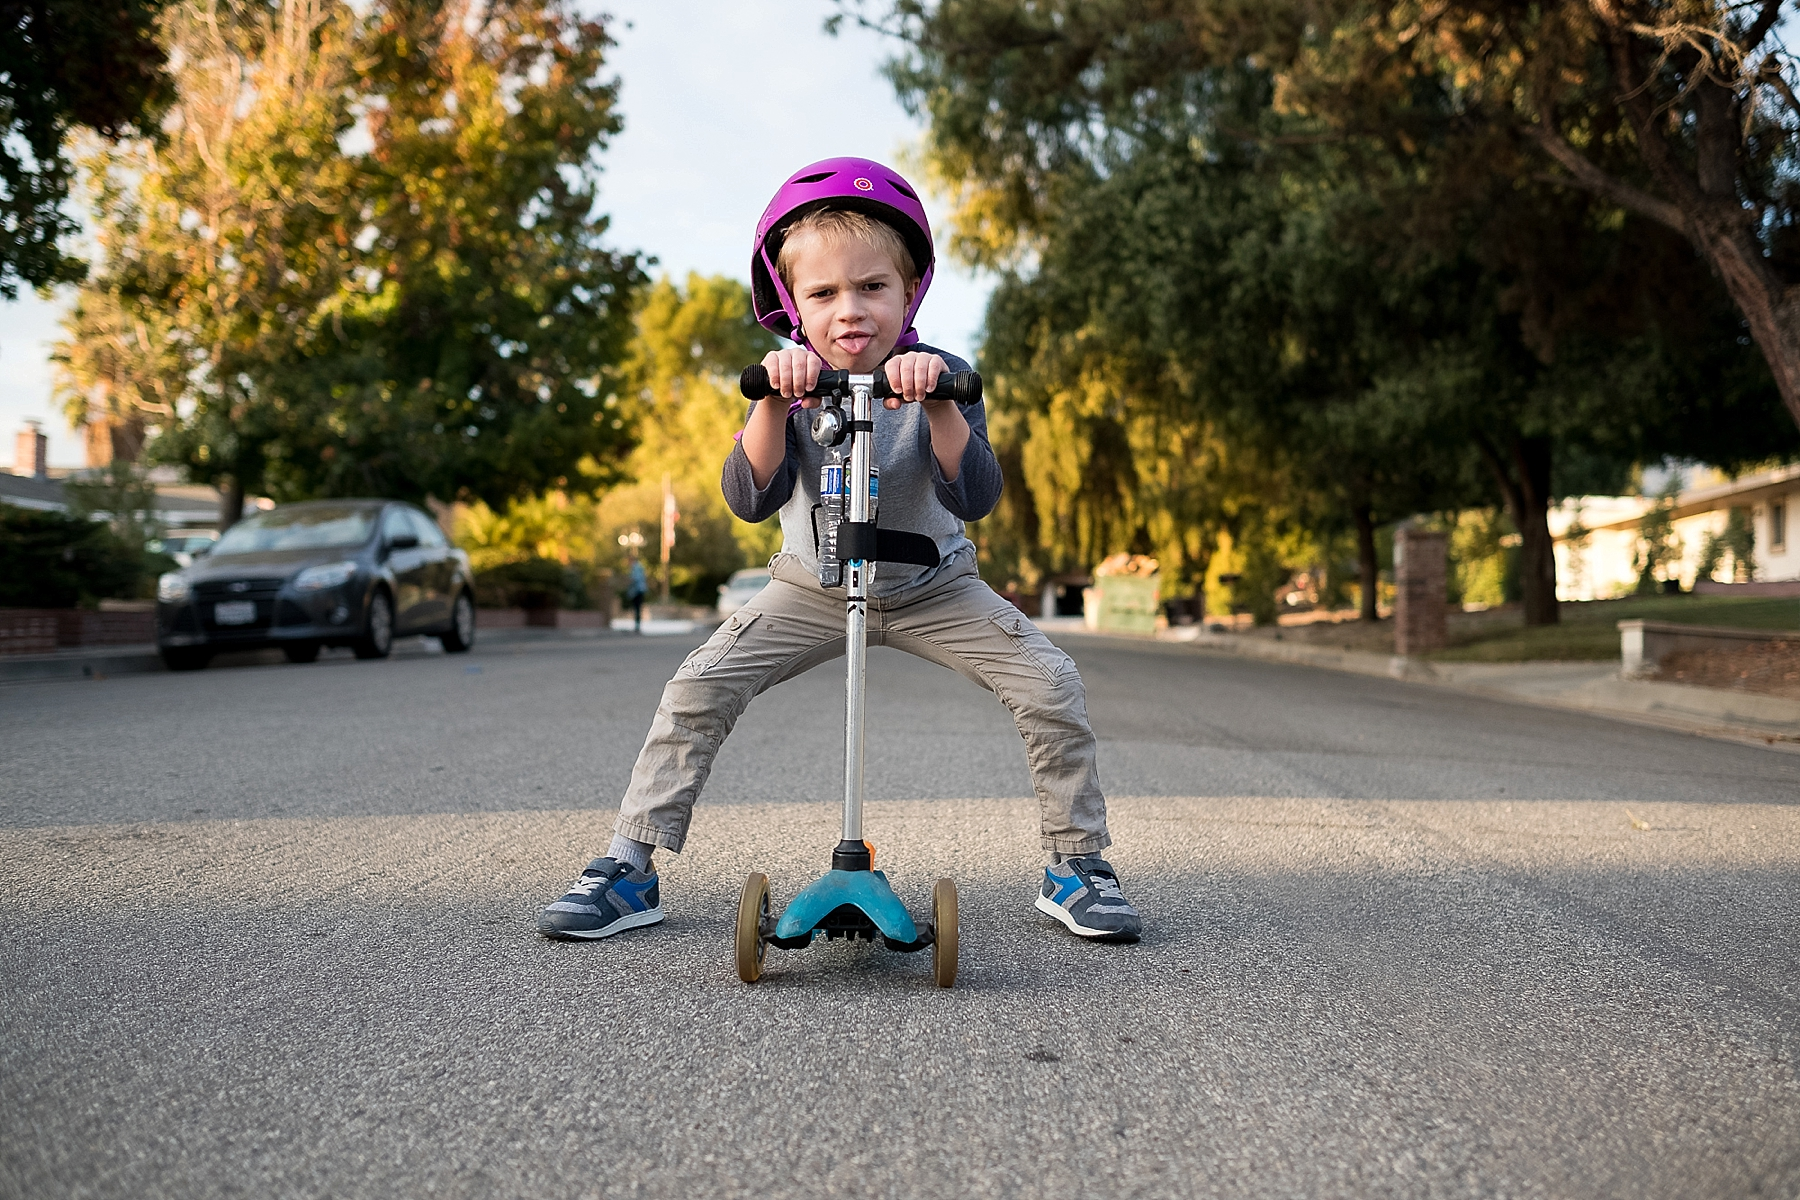 A candid documentary photo of a boy on his scooter in Claremont, CA taken by Erica Faith Walker.